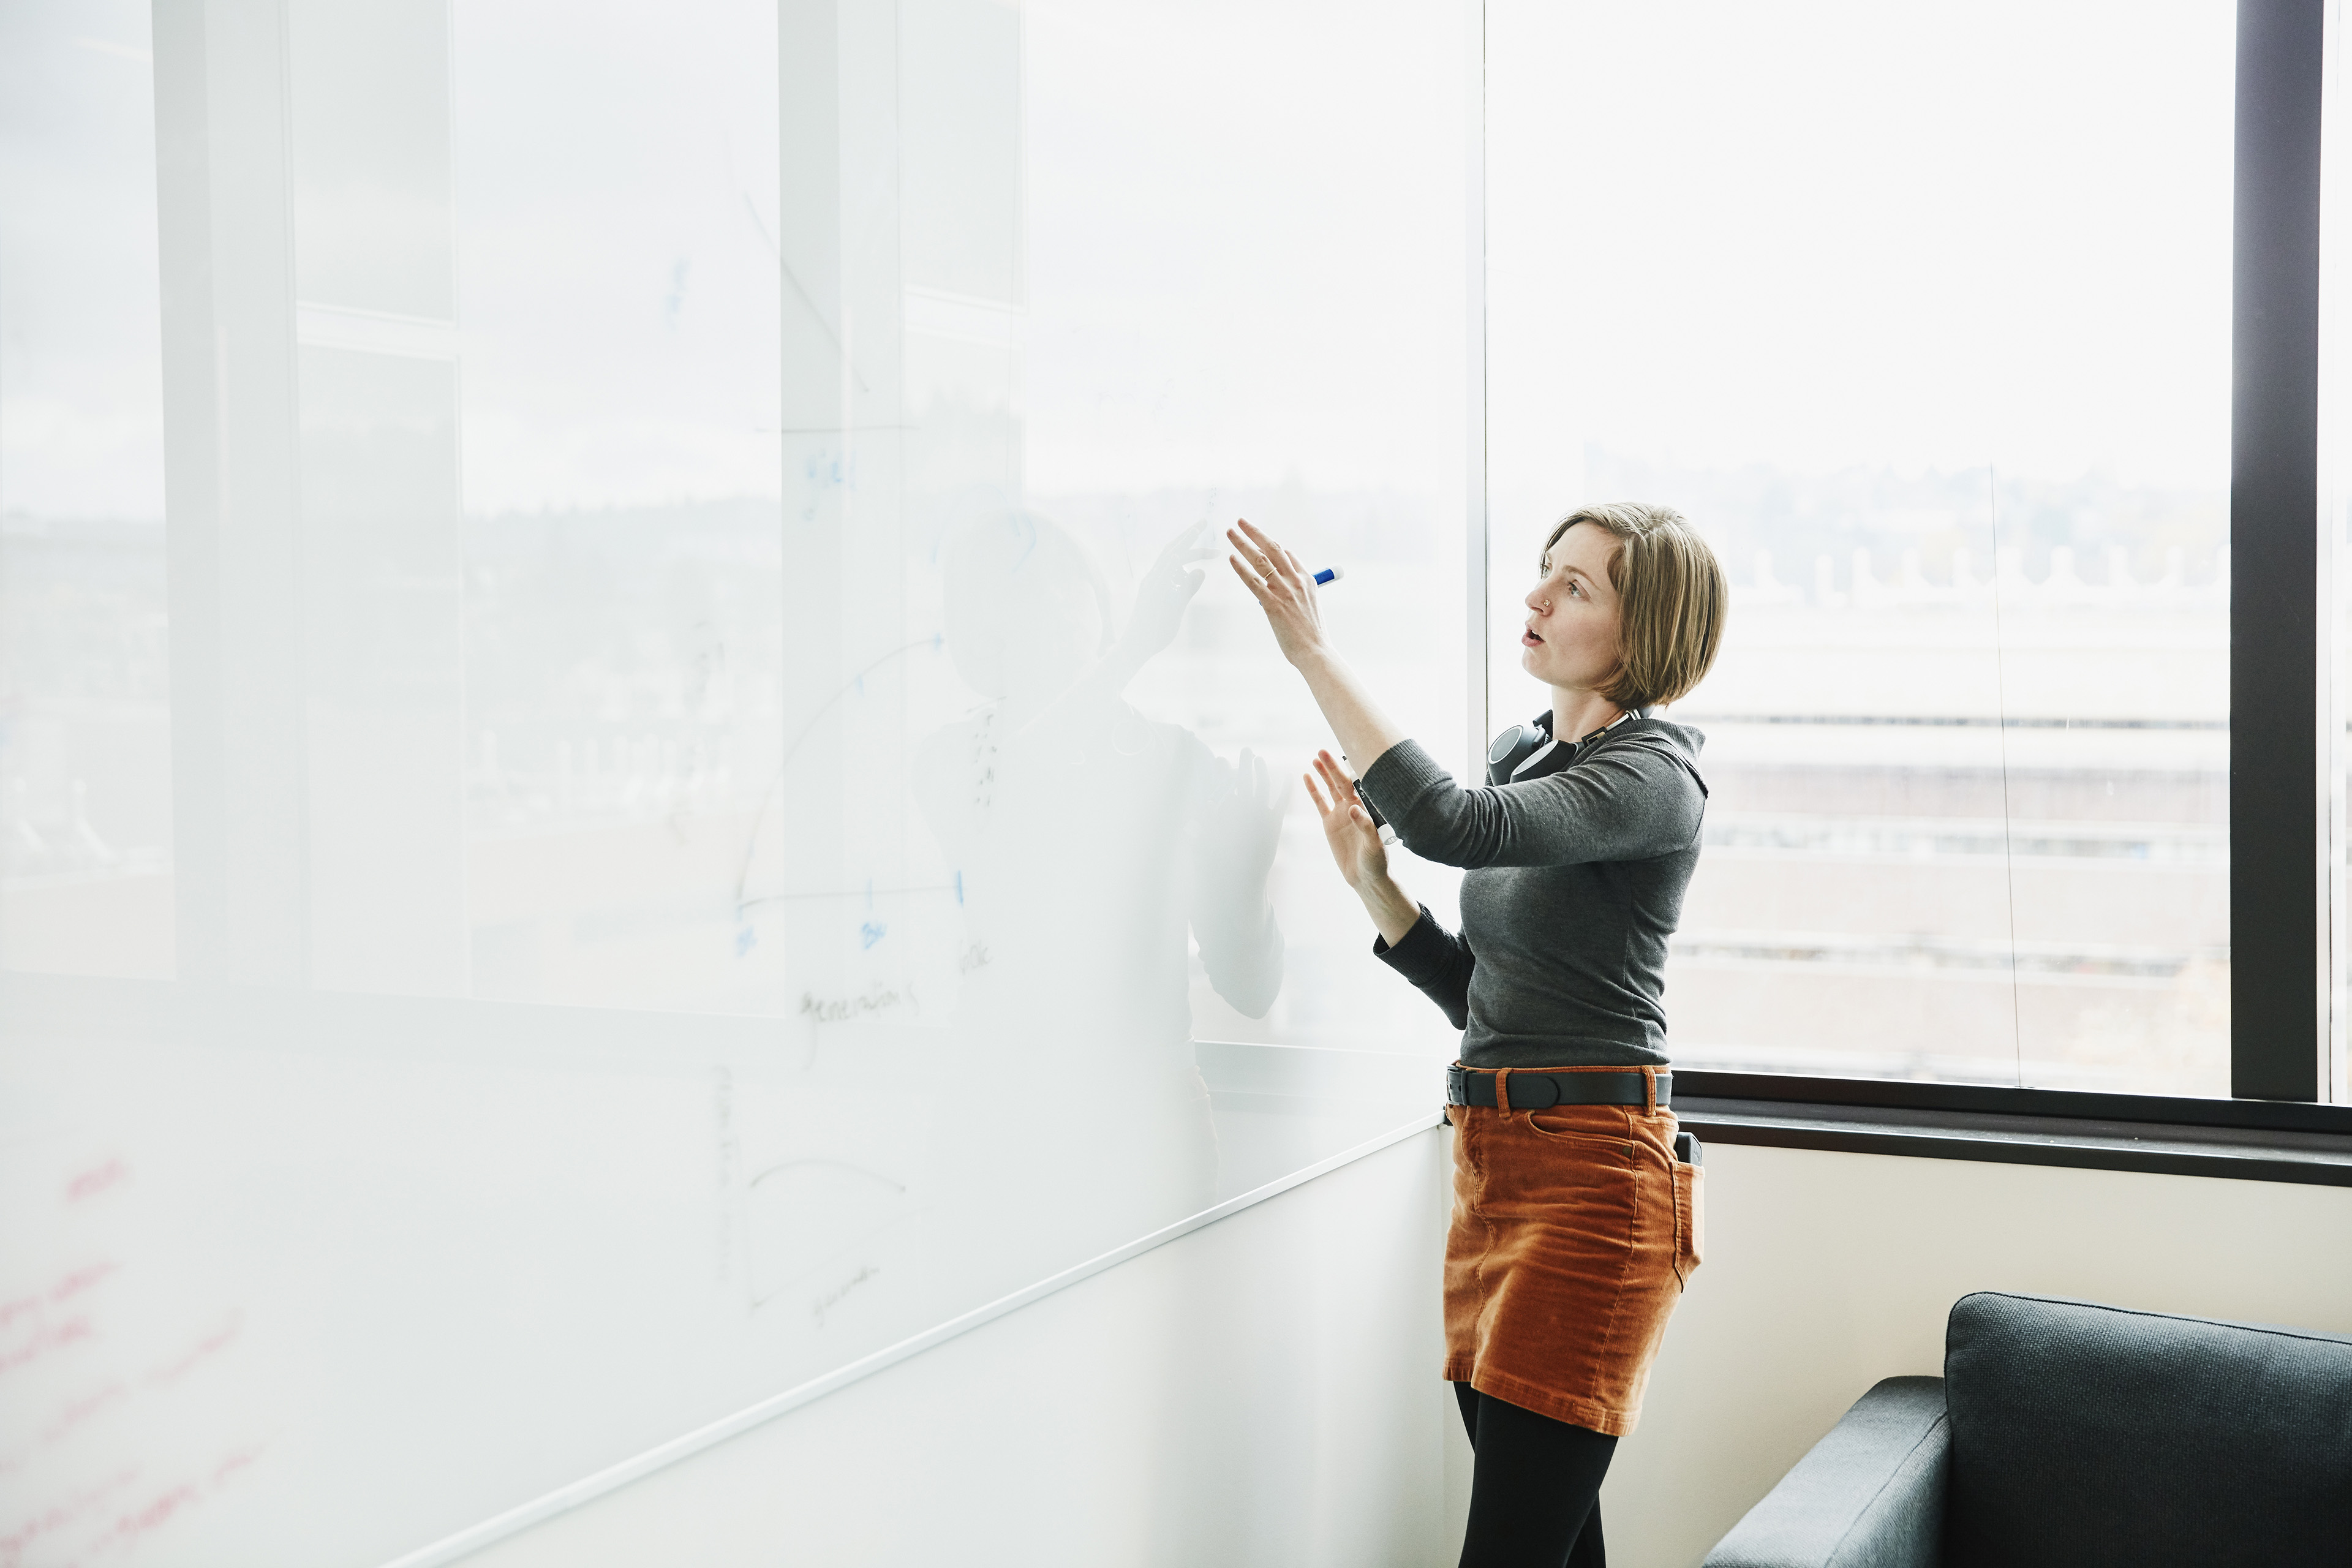 businesswoman leading project discussion at whiteboard in room